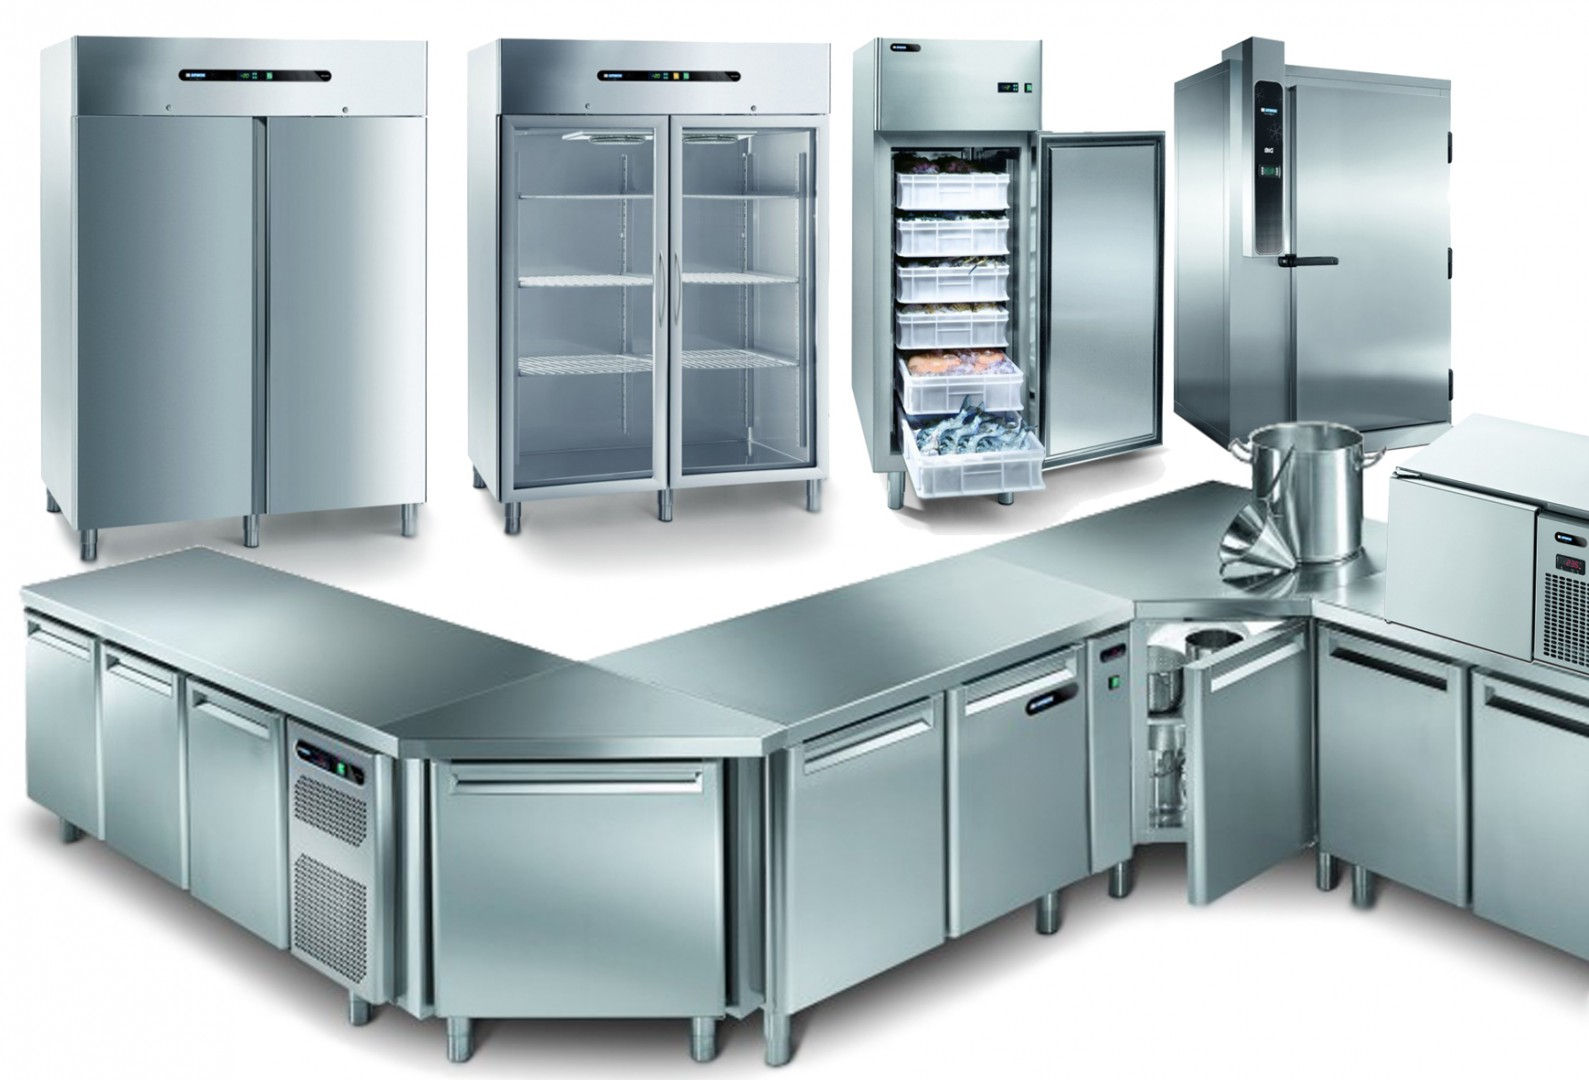 Stainless-steel-chillerscabinets-and-refrigerated-tables